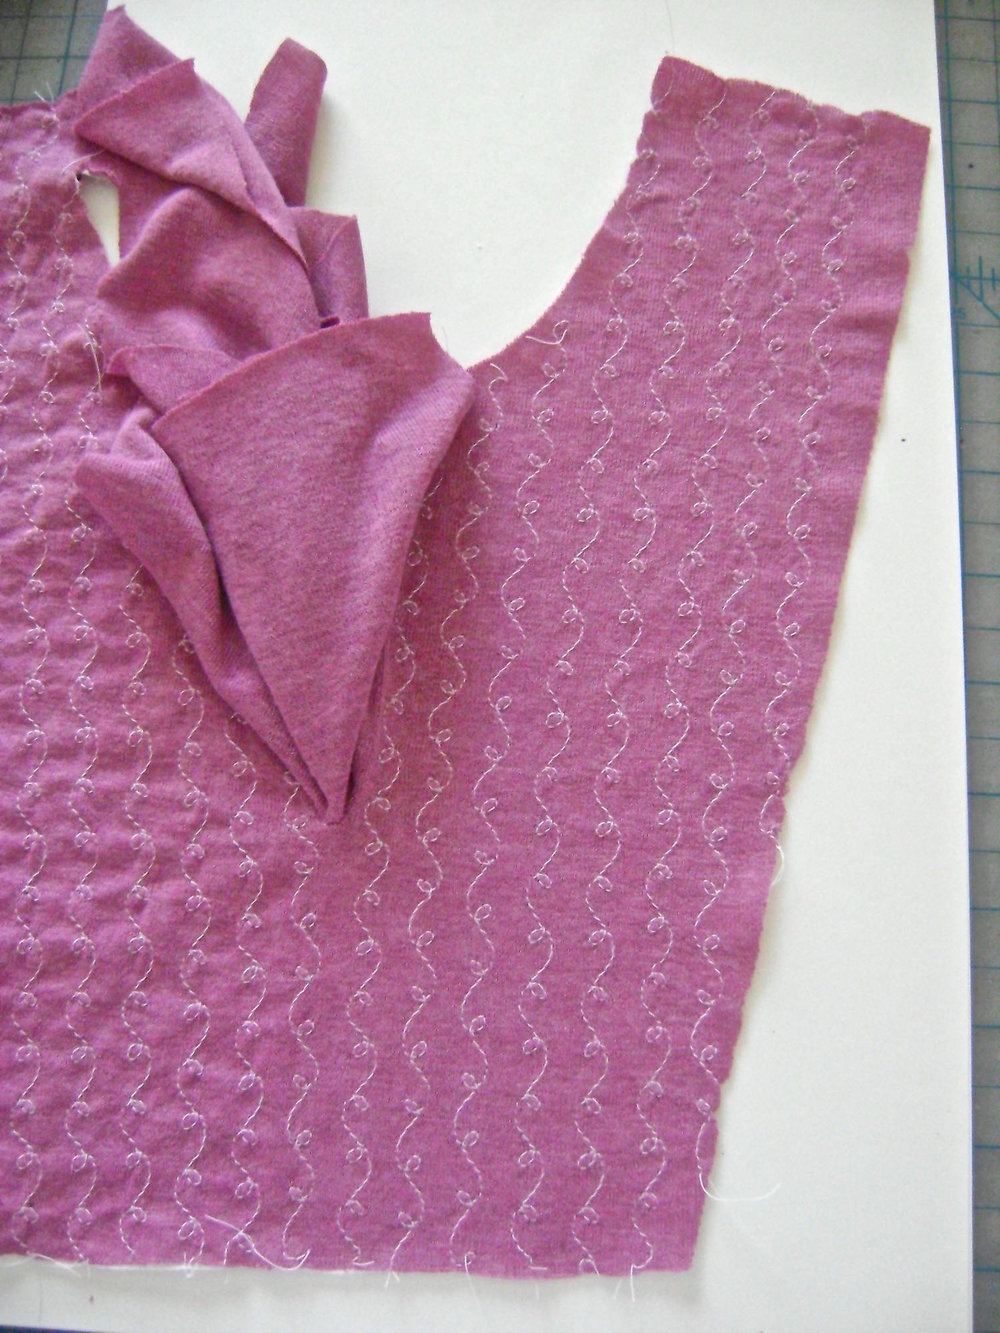 step 8 - Add more rows until the placket is filled.  be sure to stitch only on the interfaced fabric.